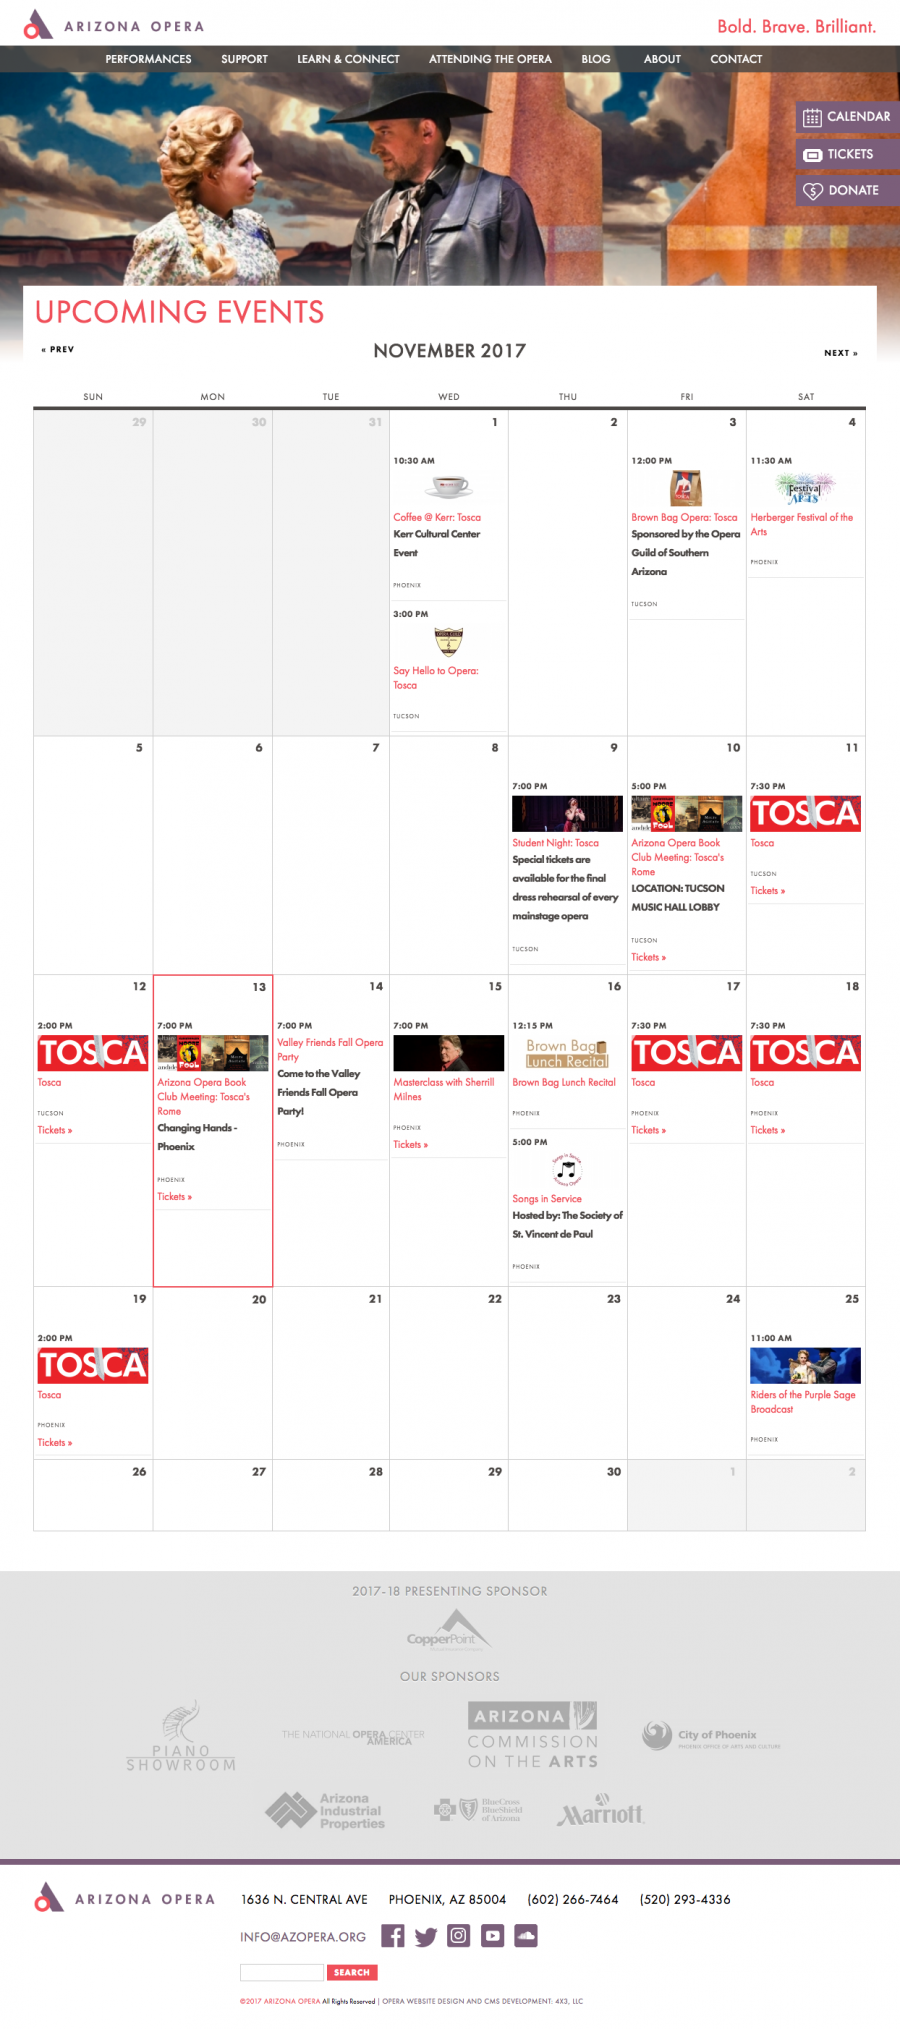 Arizona Opera Calendar Landing Page for Upcoming Events and Performances